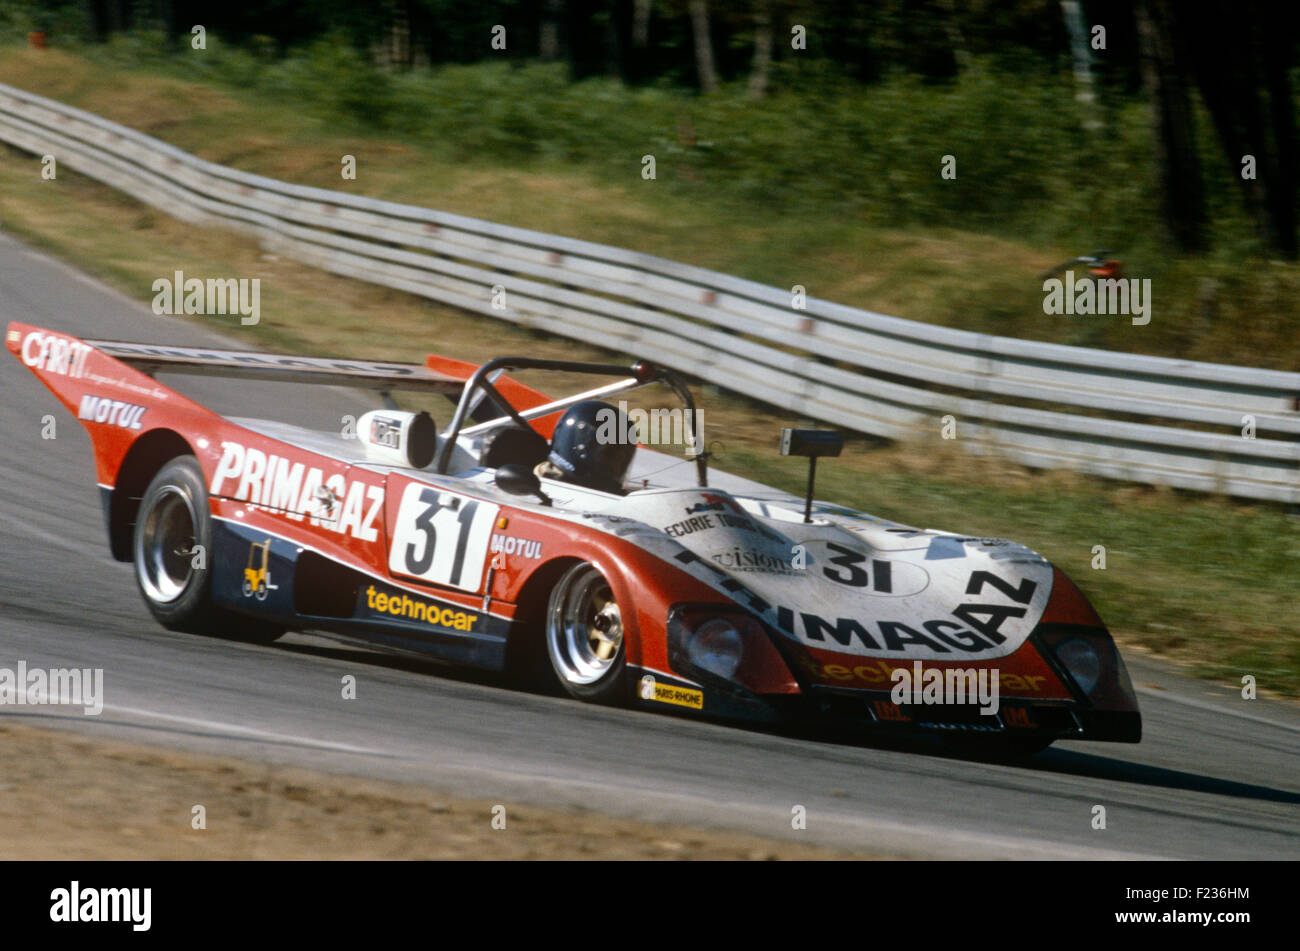 31 Jean Philippe Grand and Yves Courage Lola T298 at Le Mans 14 June 1981 - Stock Image